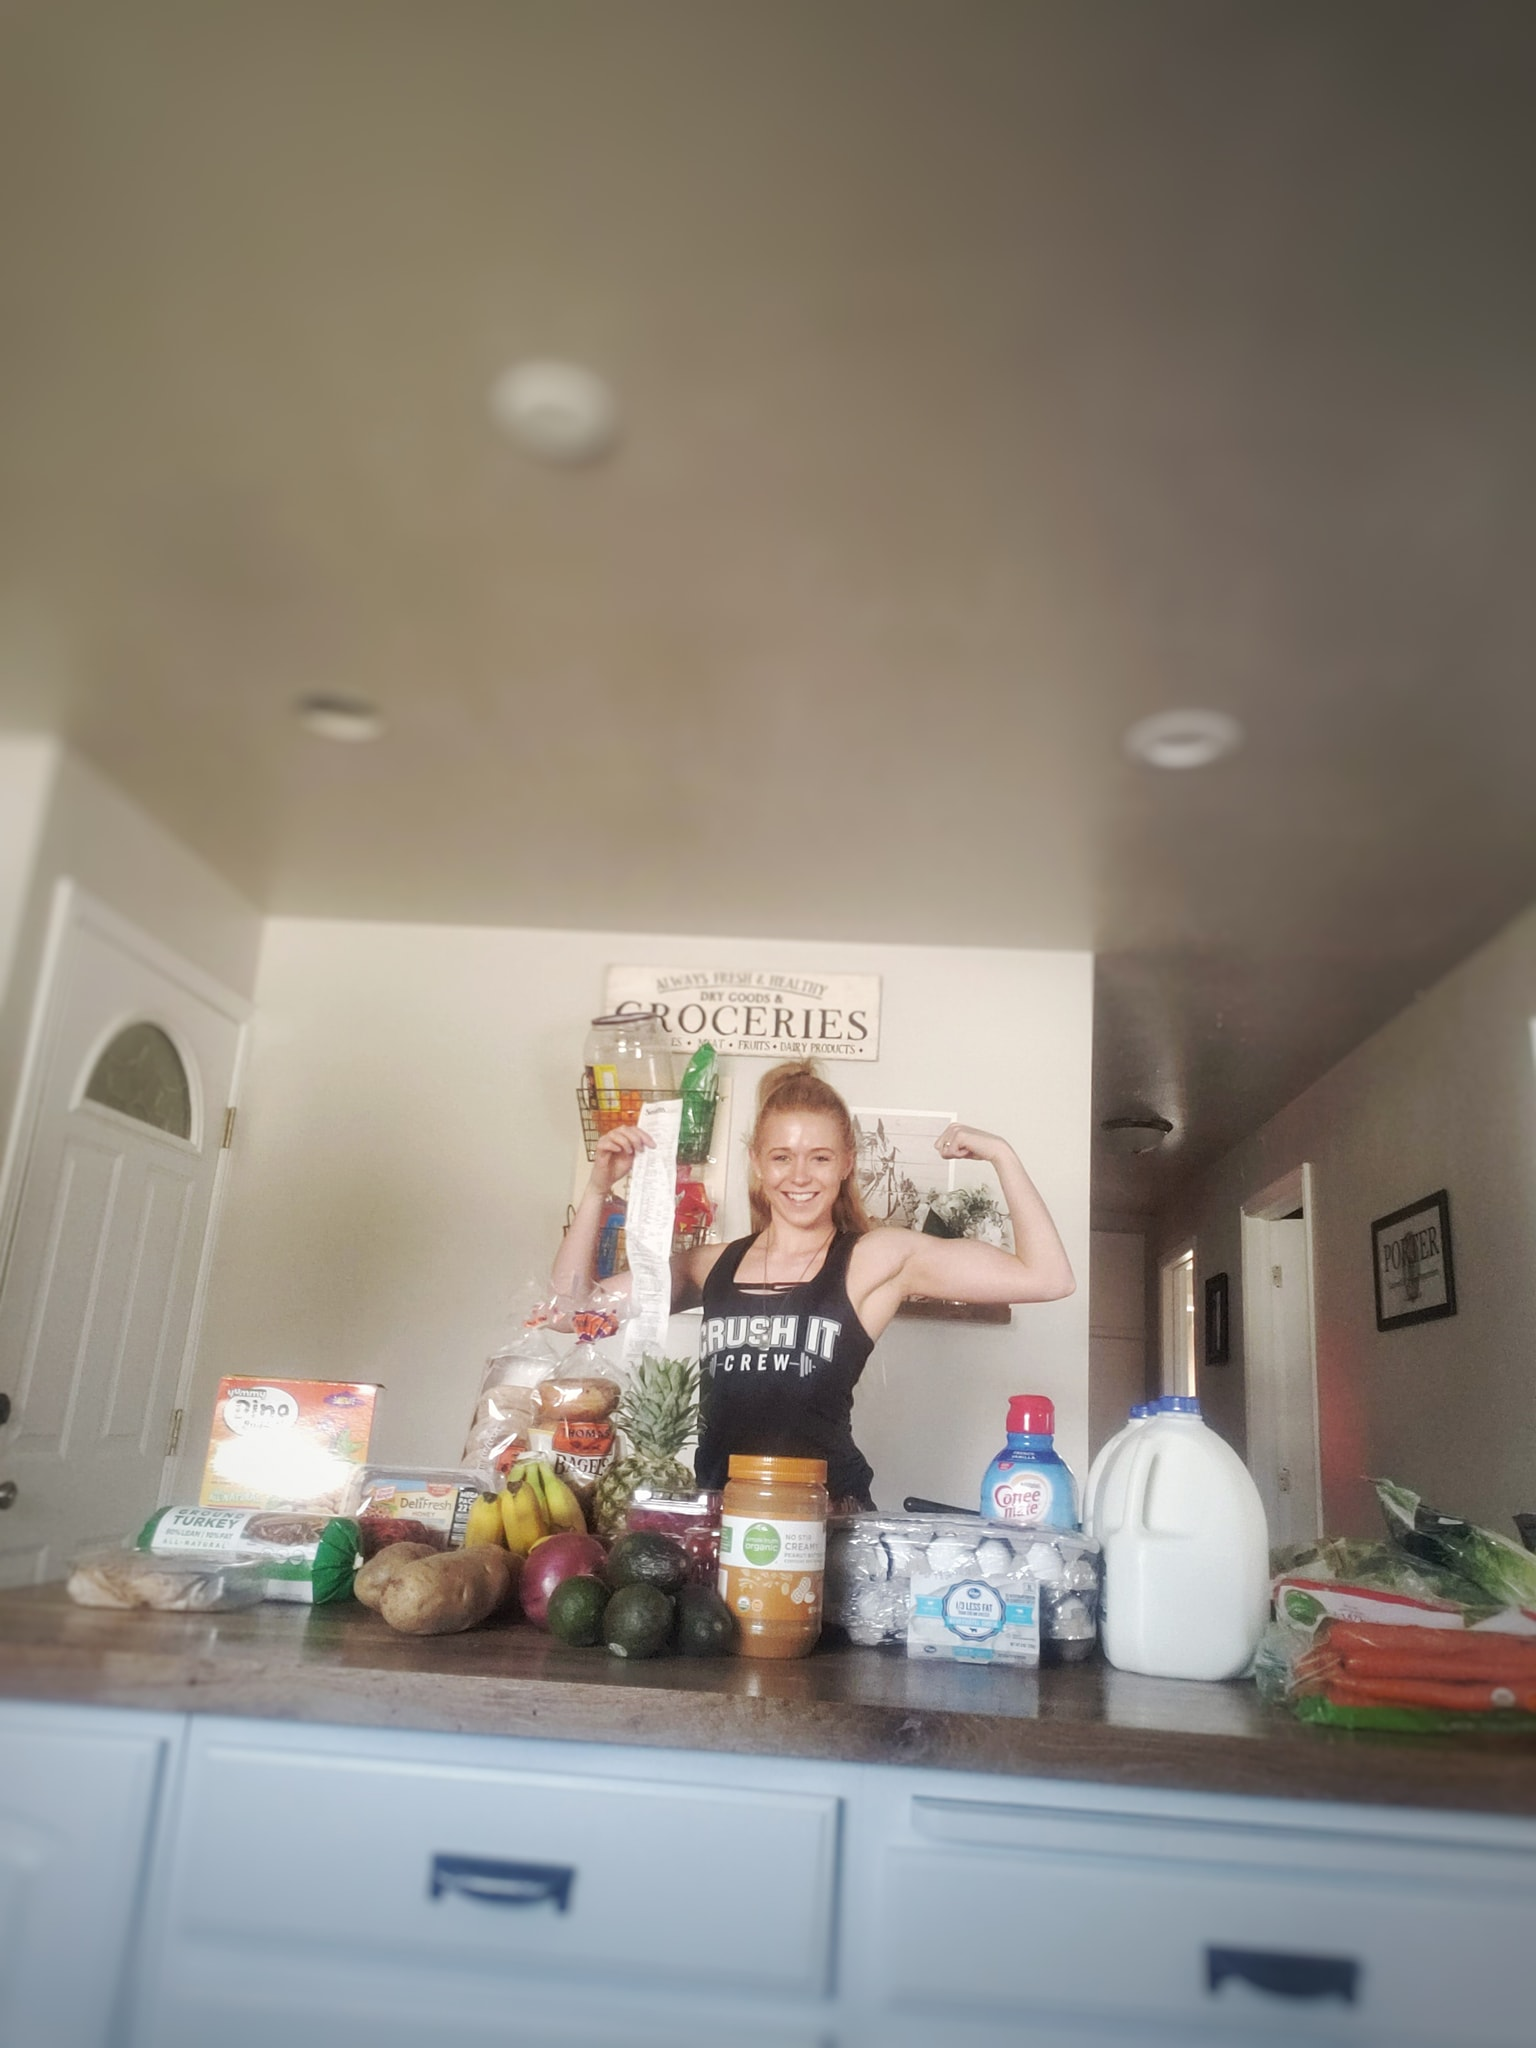 $150 grocery clean eating haul